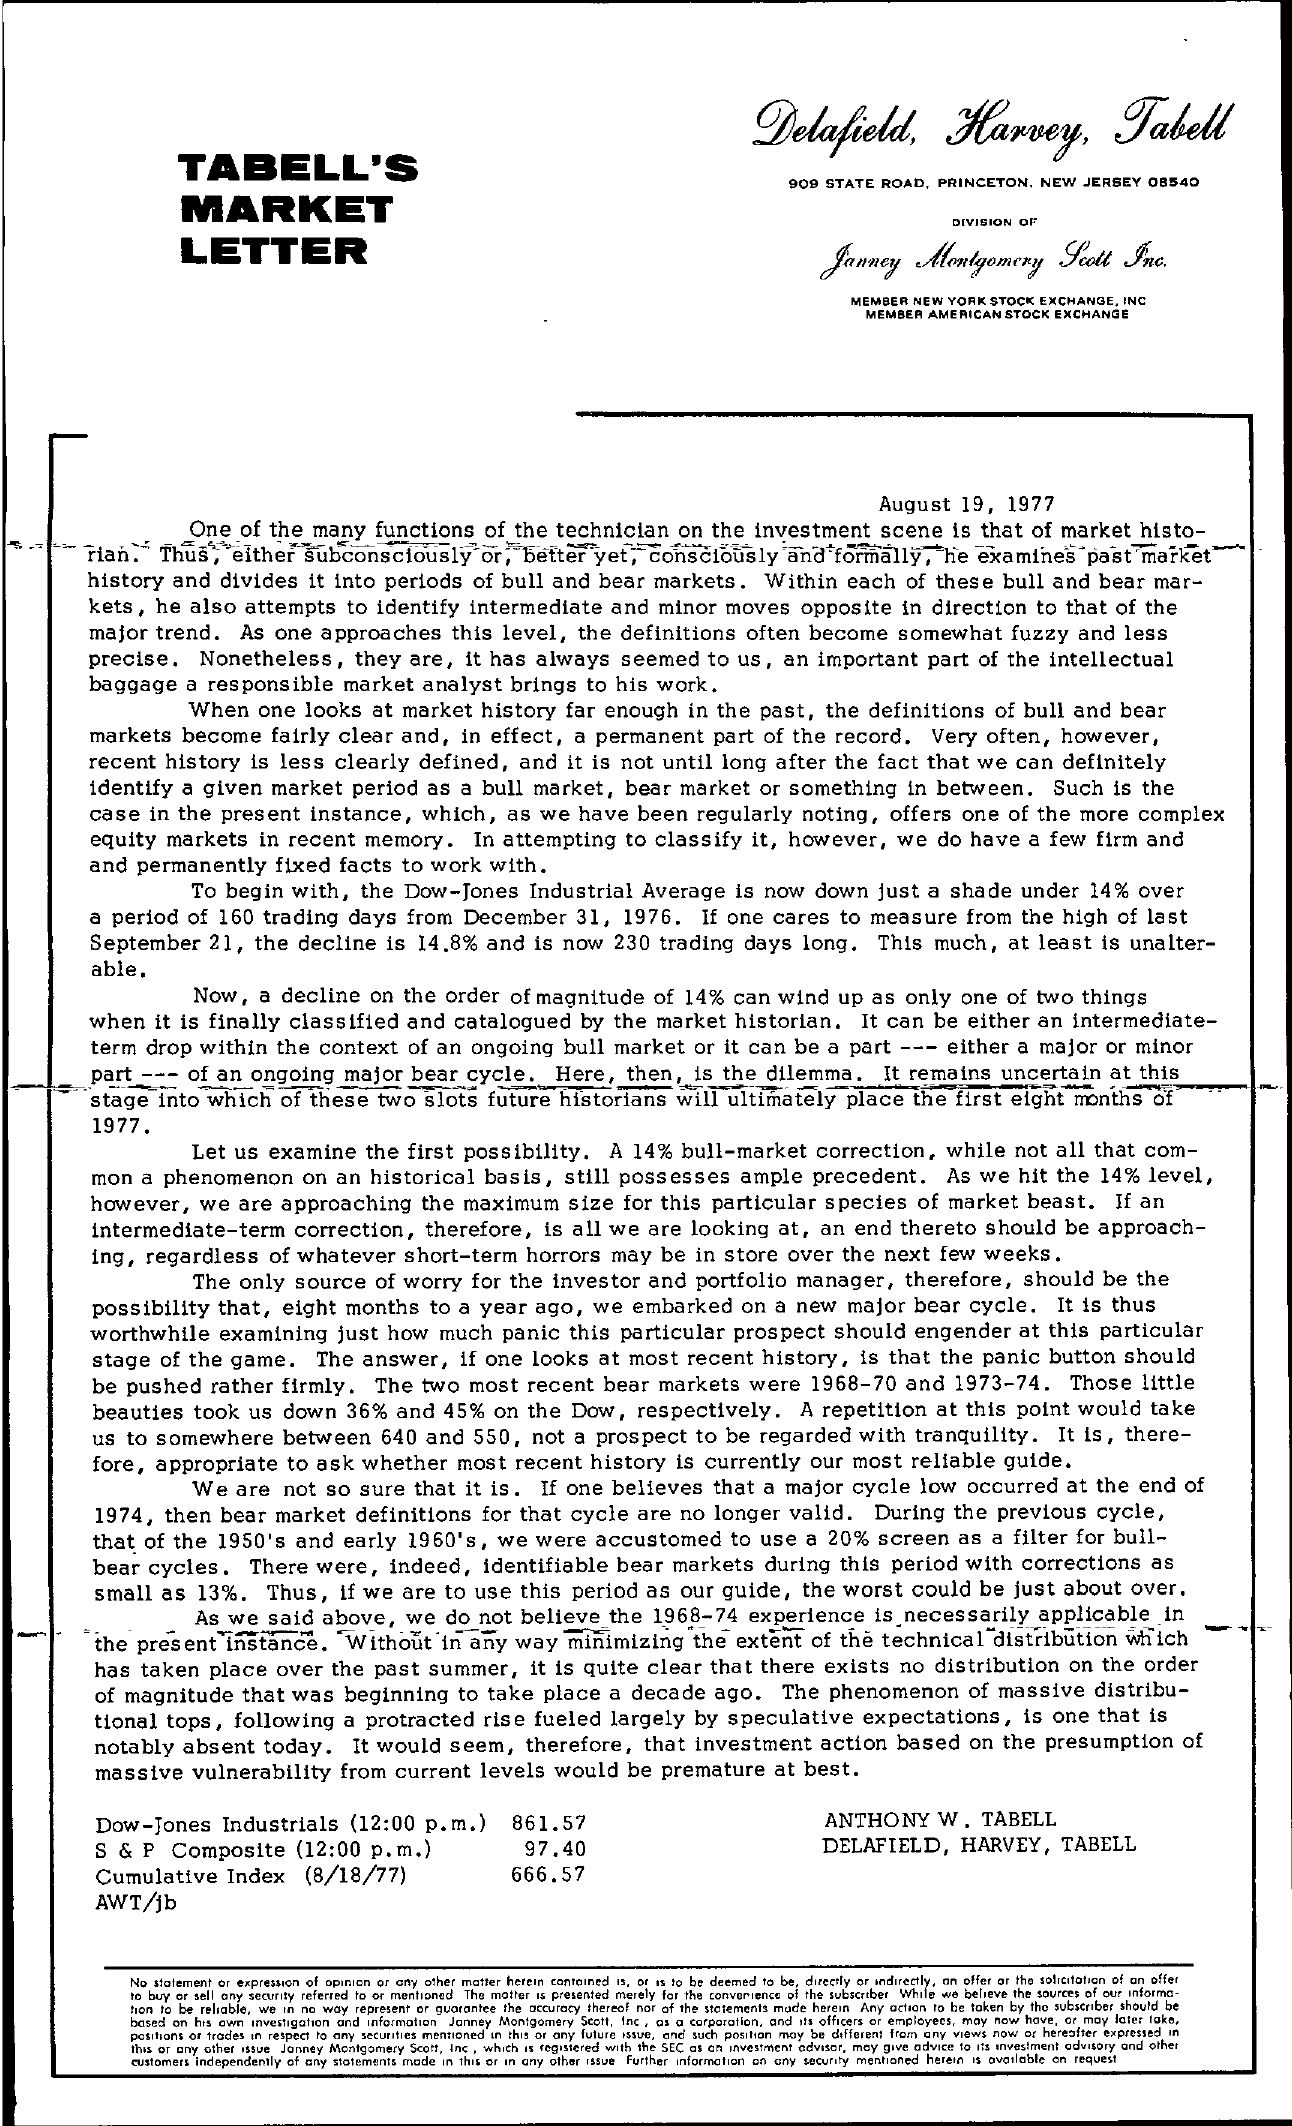 Tabell's Market Letter - August 19, 1977